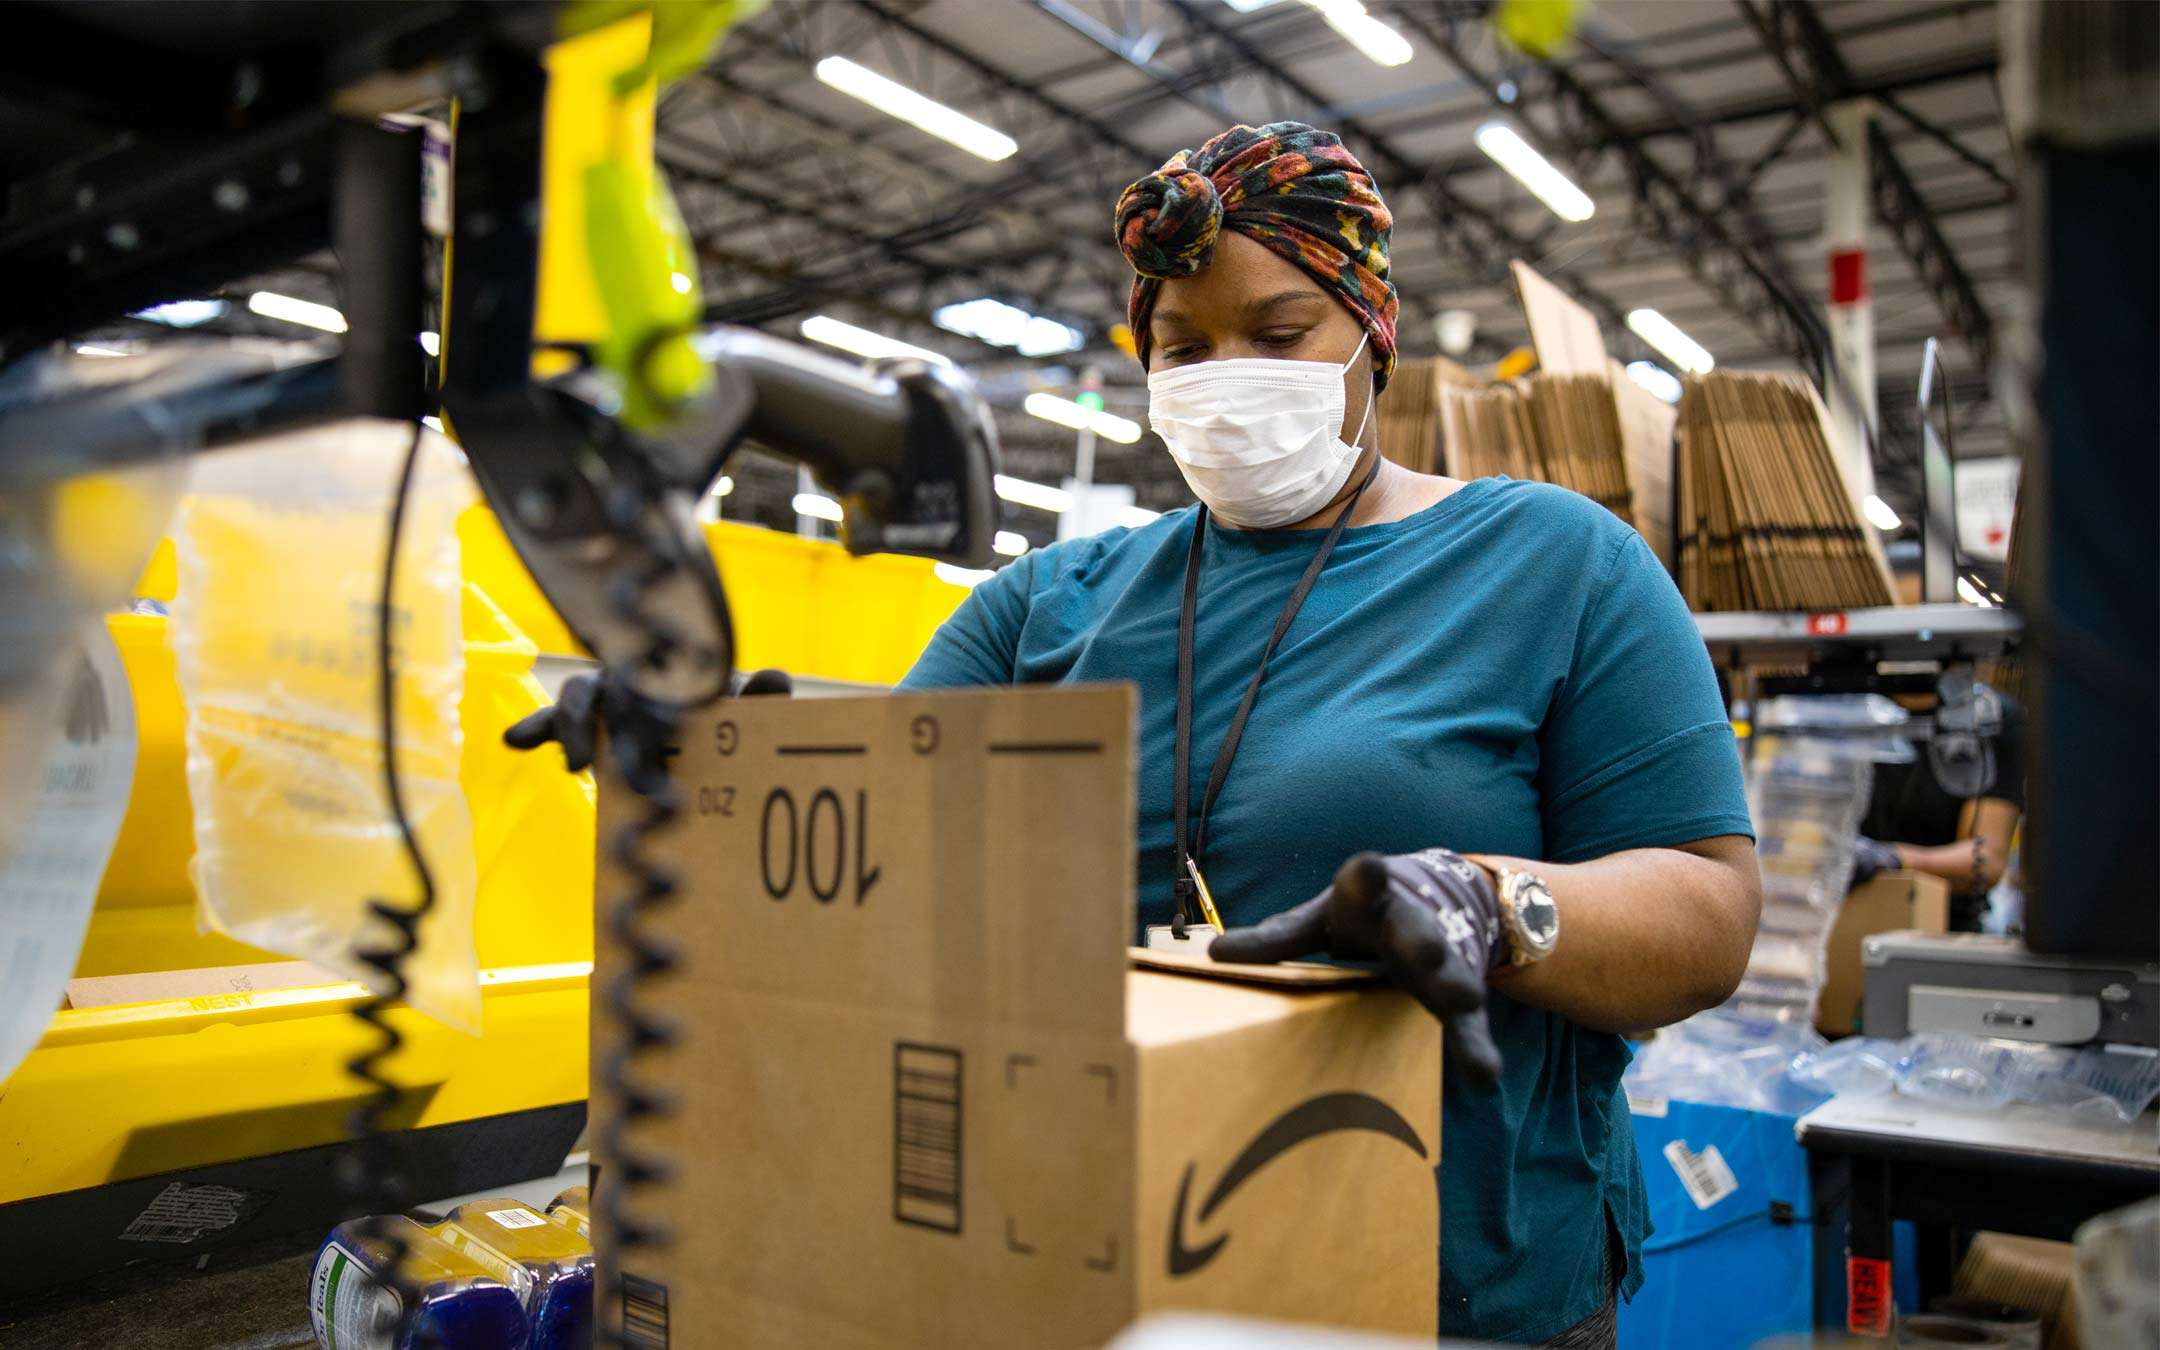 Amazon: 19,816 employees positive for COVID-19